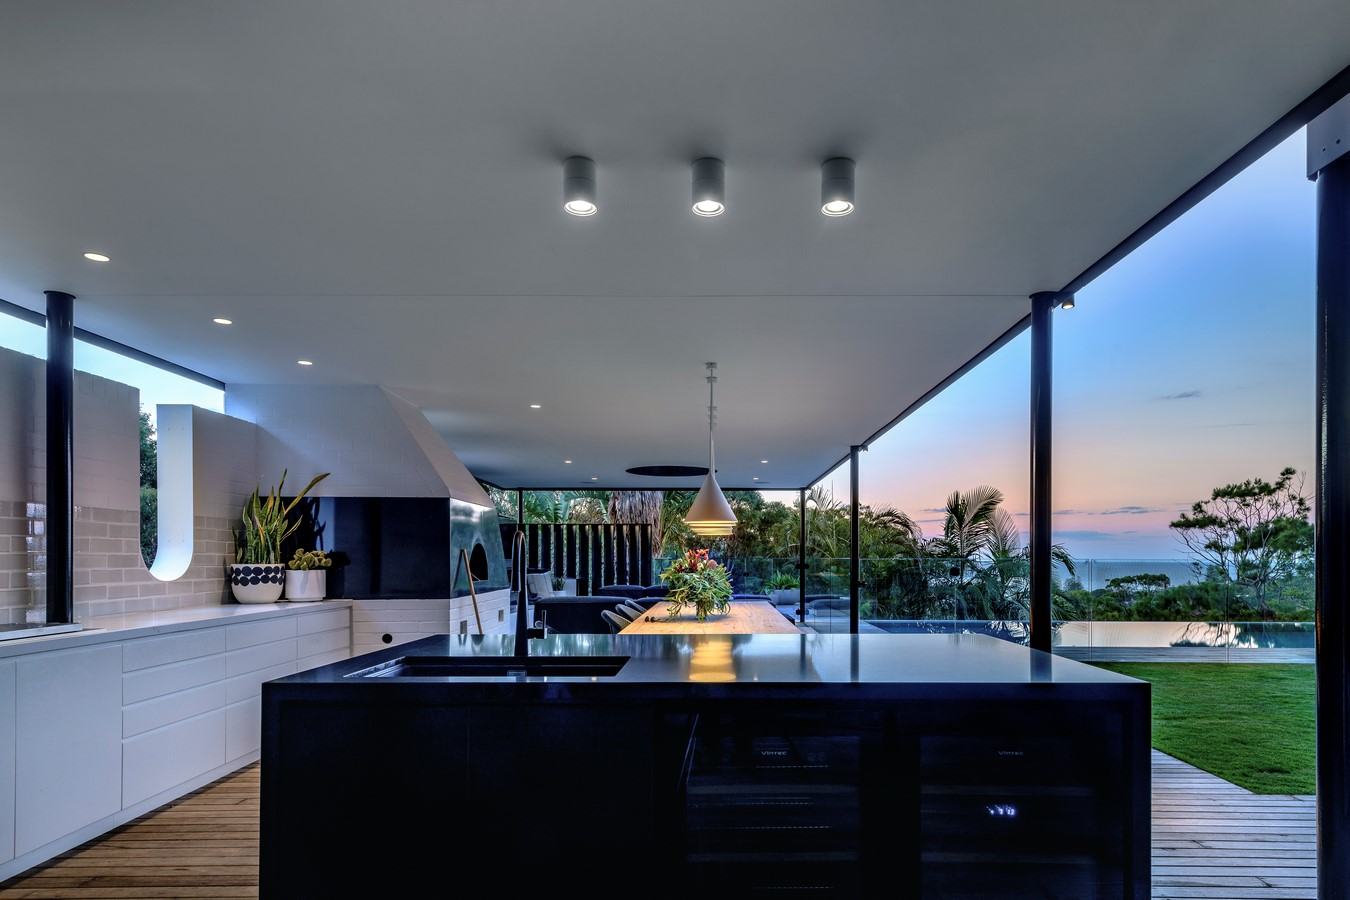 5155 LA Cool by Carter Williamson Architects: Sheet 1